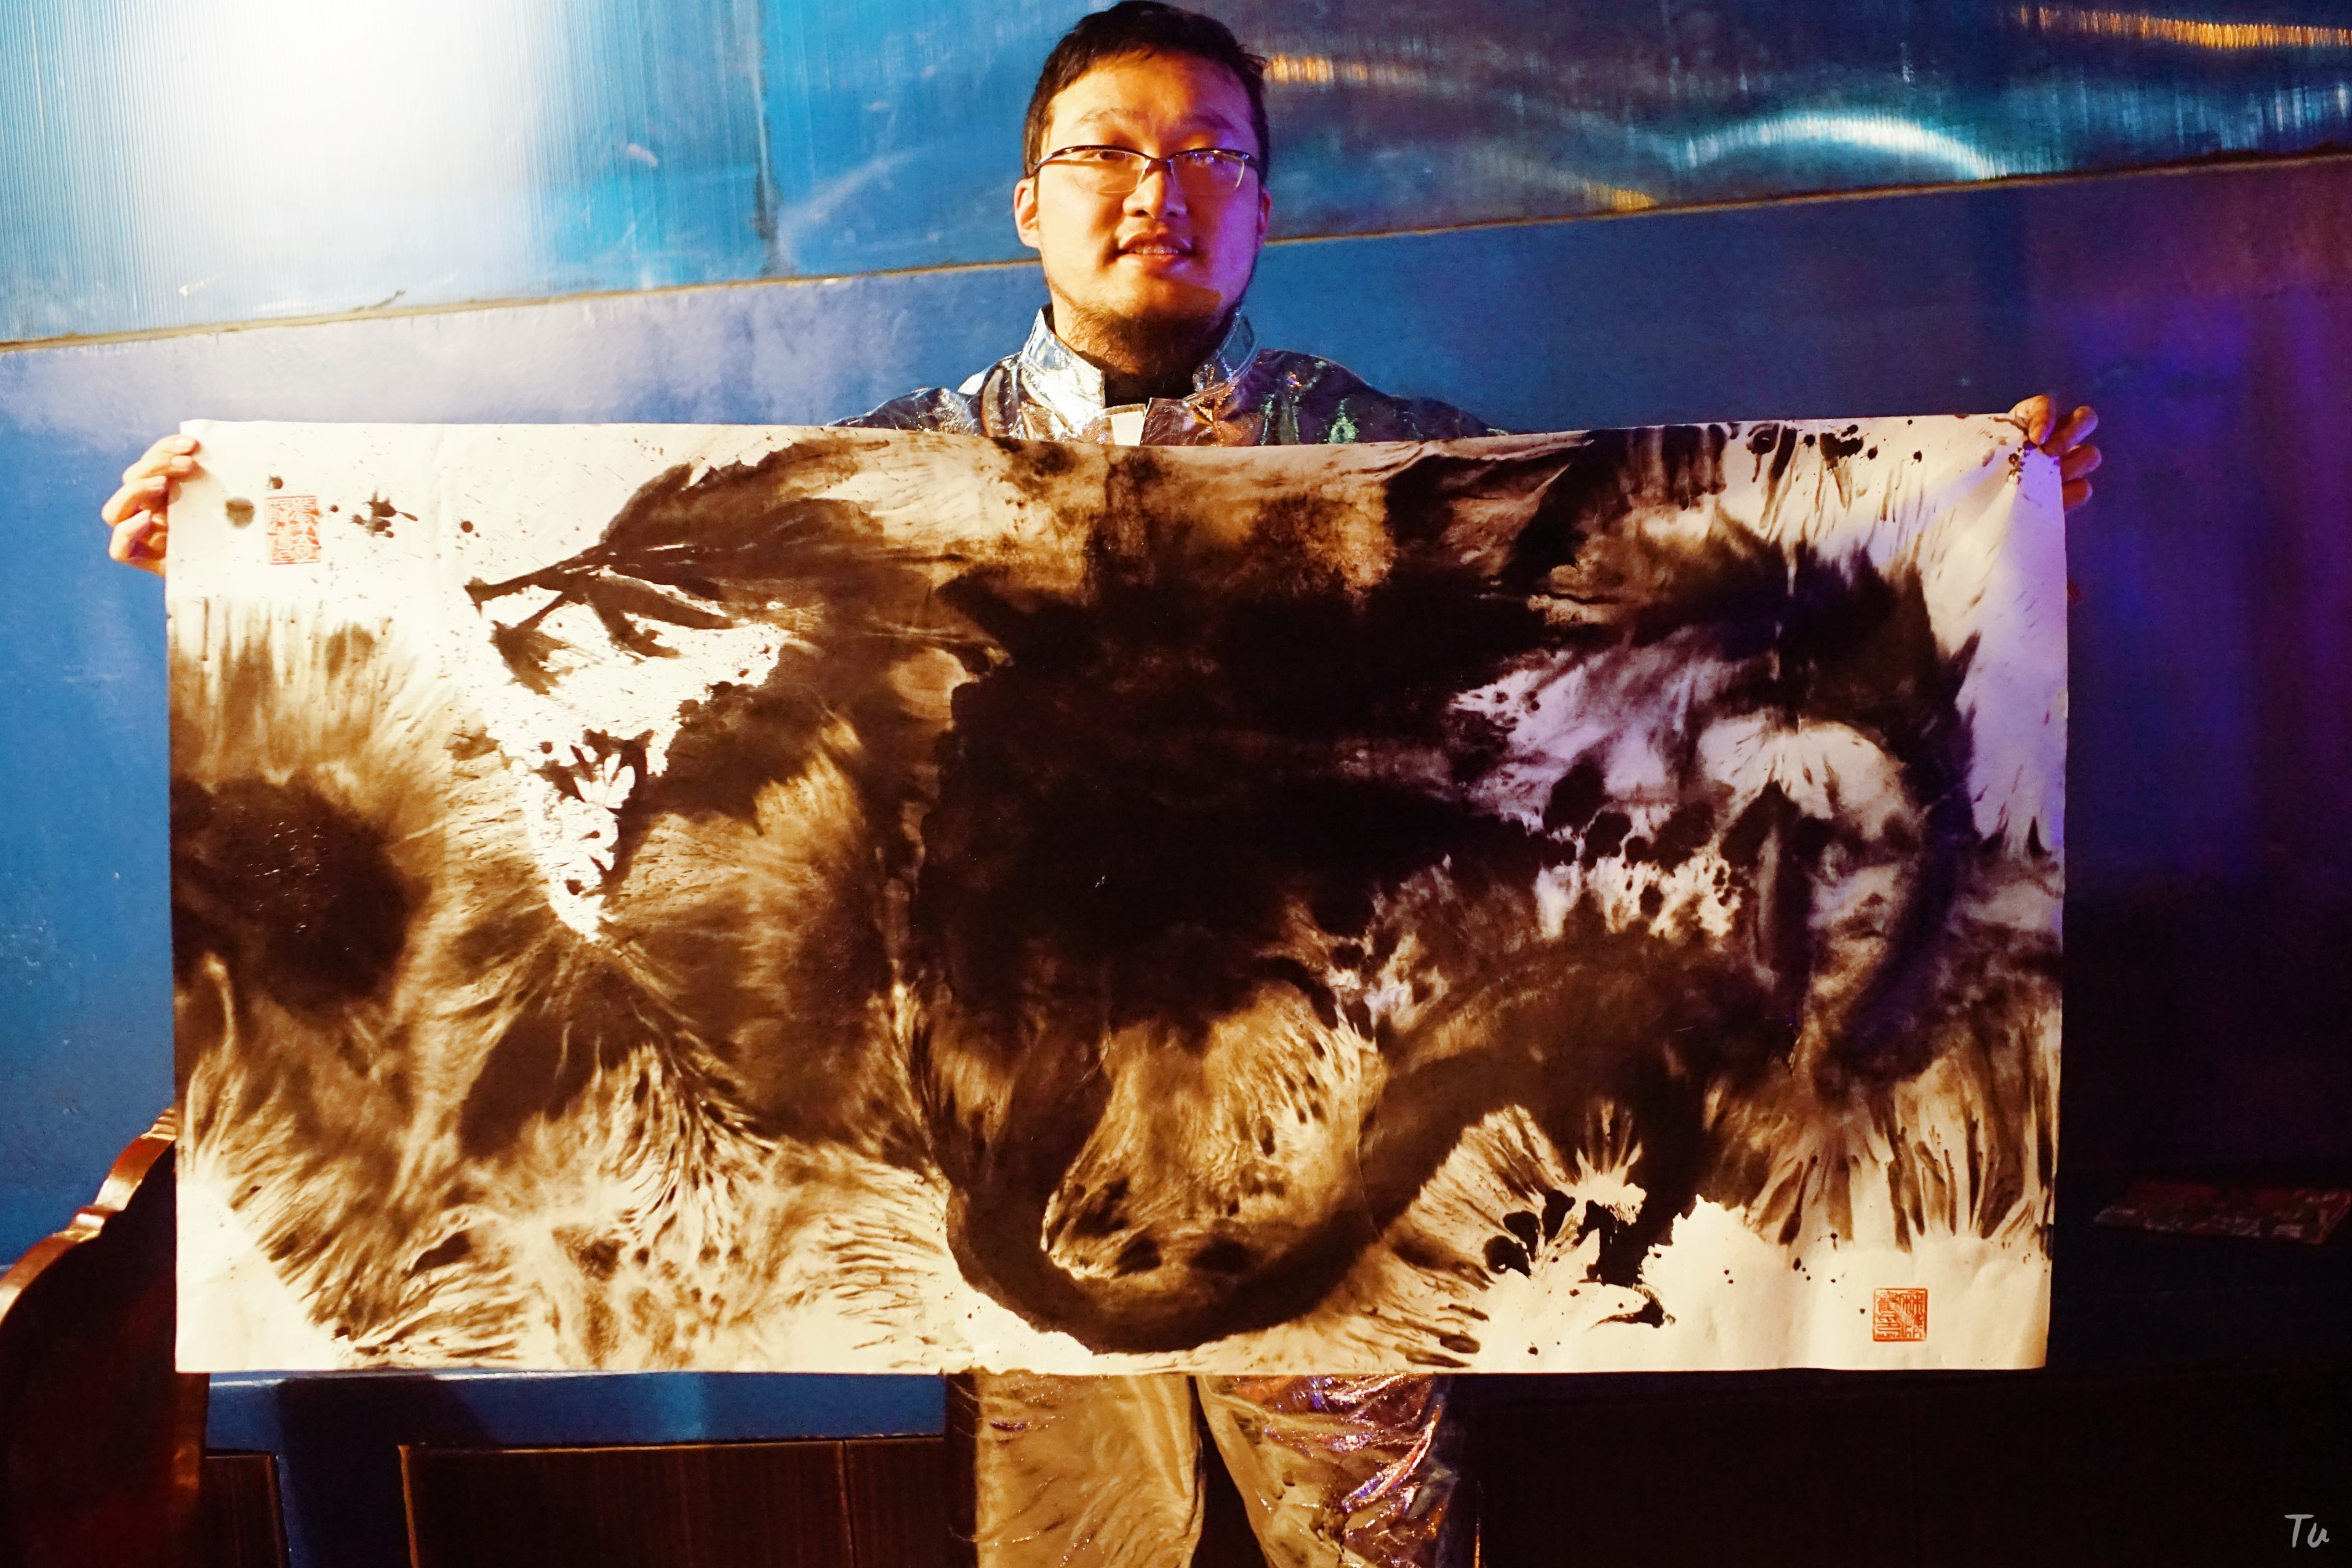 Live painting - photo by Tutu